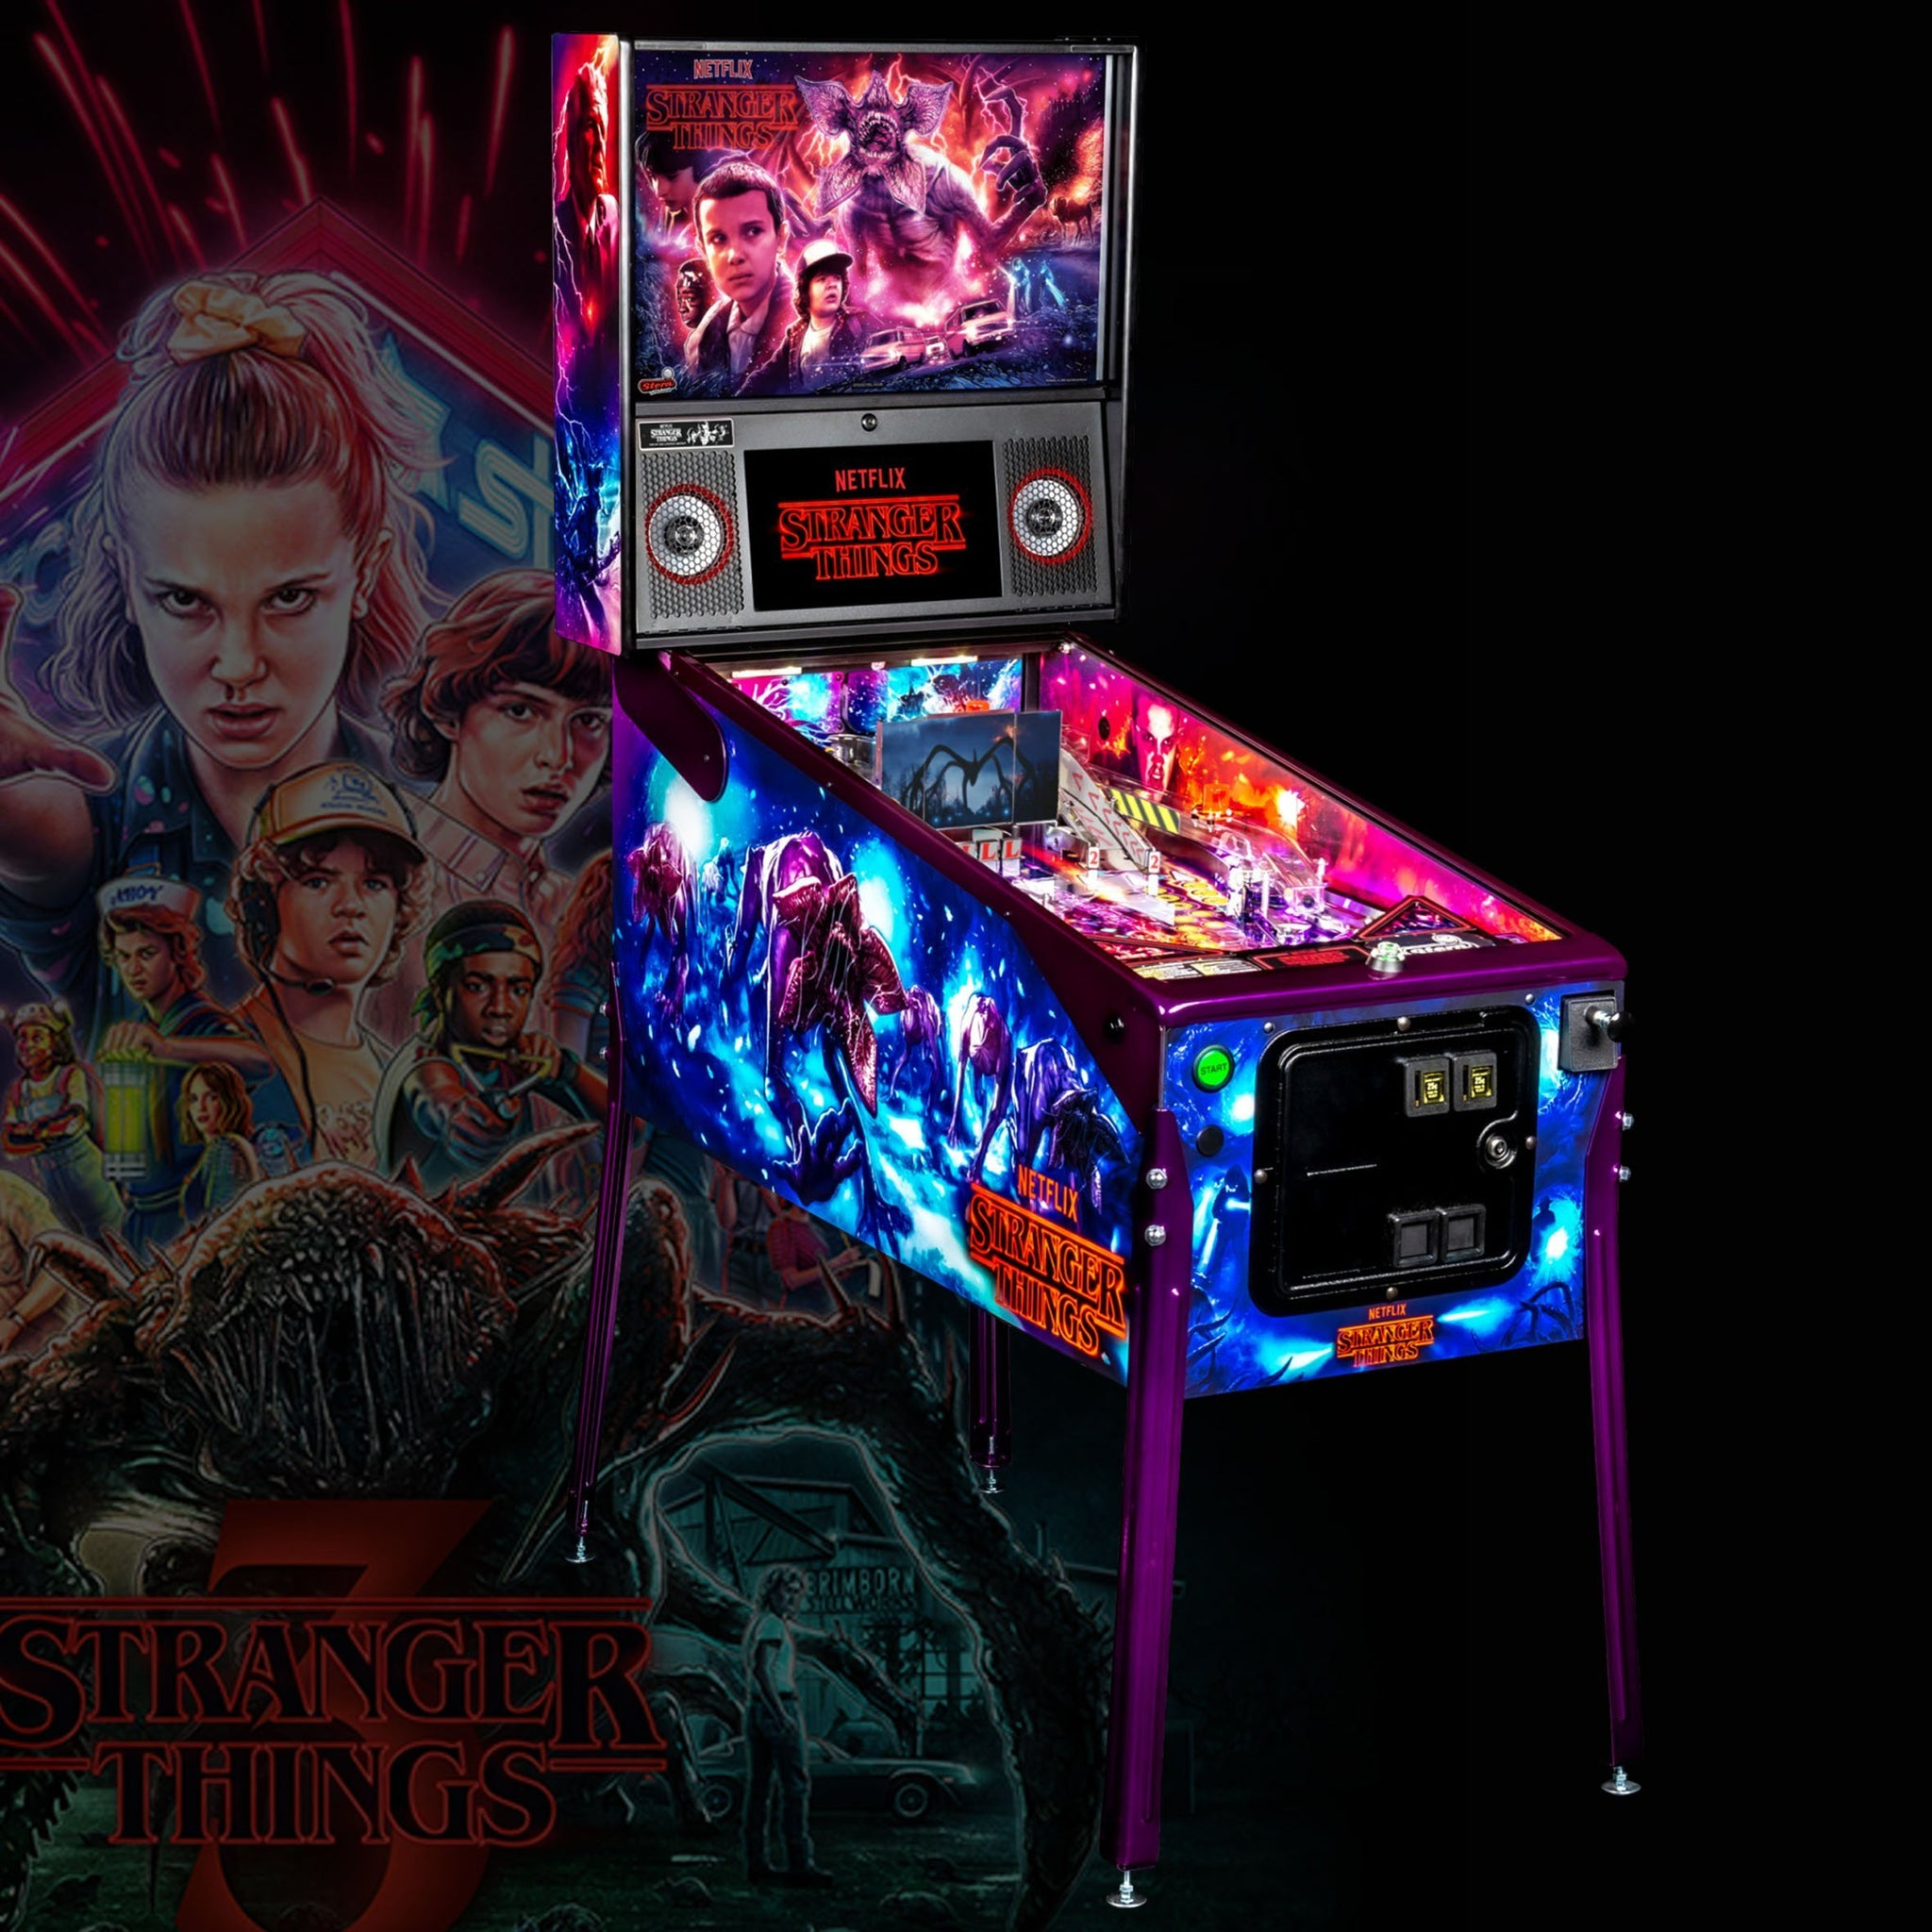 Stranger Things Limited Edition Pinball Machine by Stern